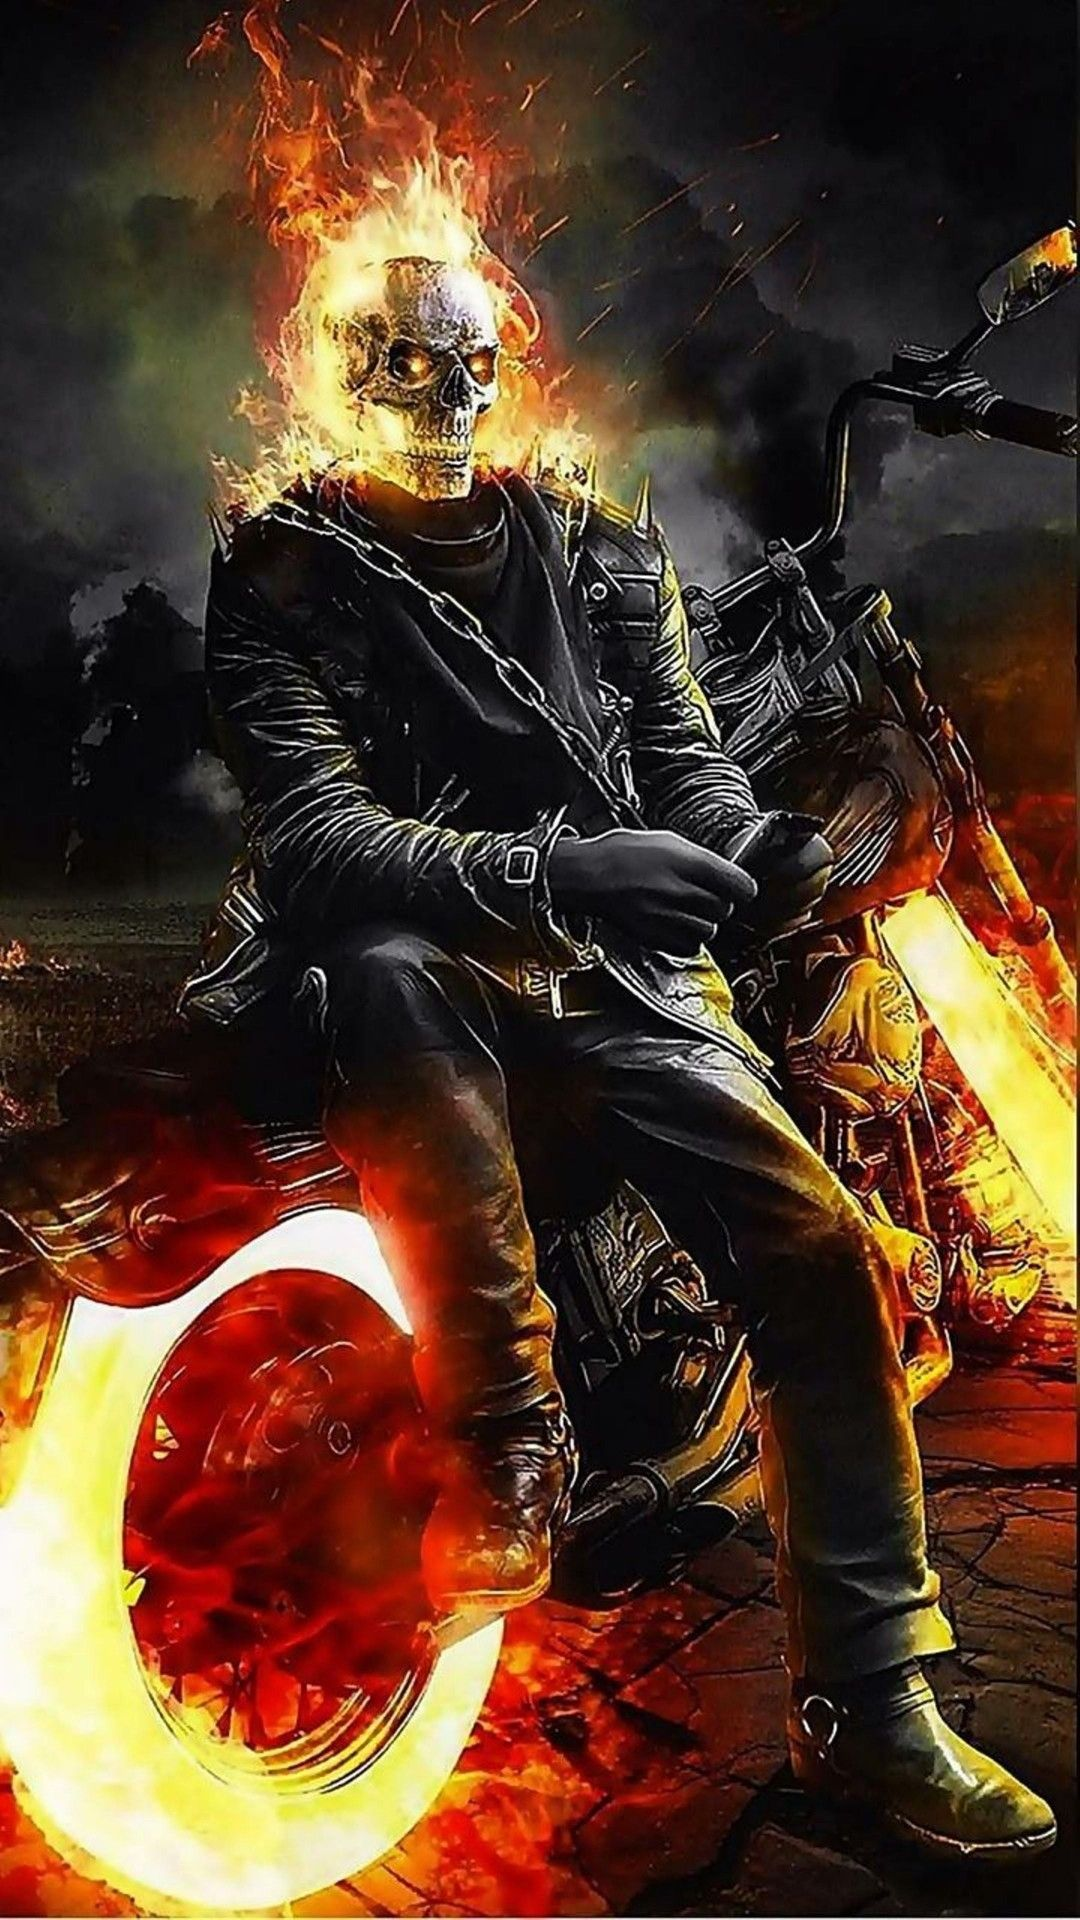 Ghost Rider Anime Ghost Rider Wallpaper Ghost Rider Tattoo